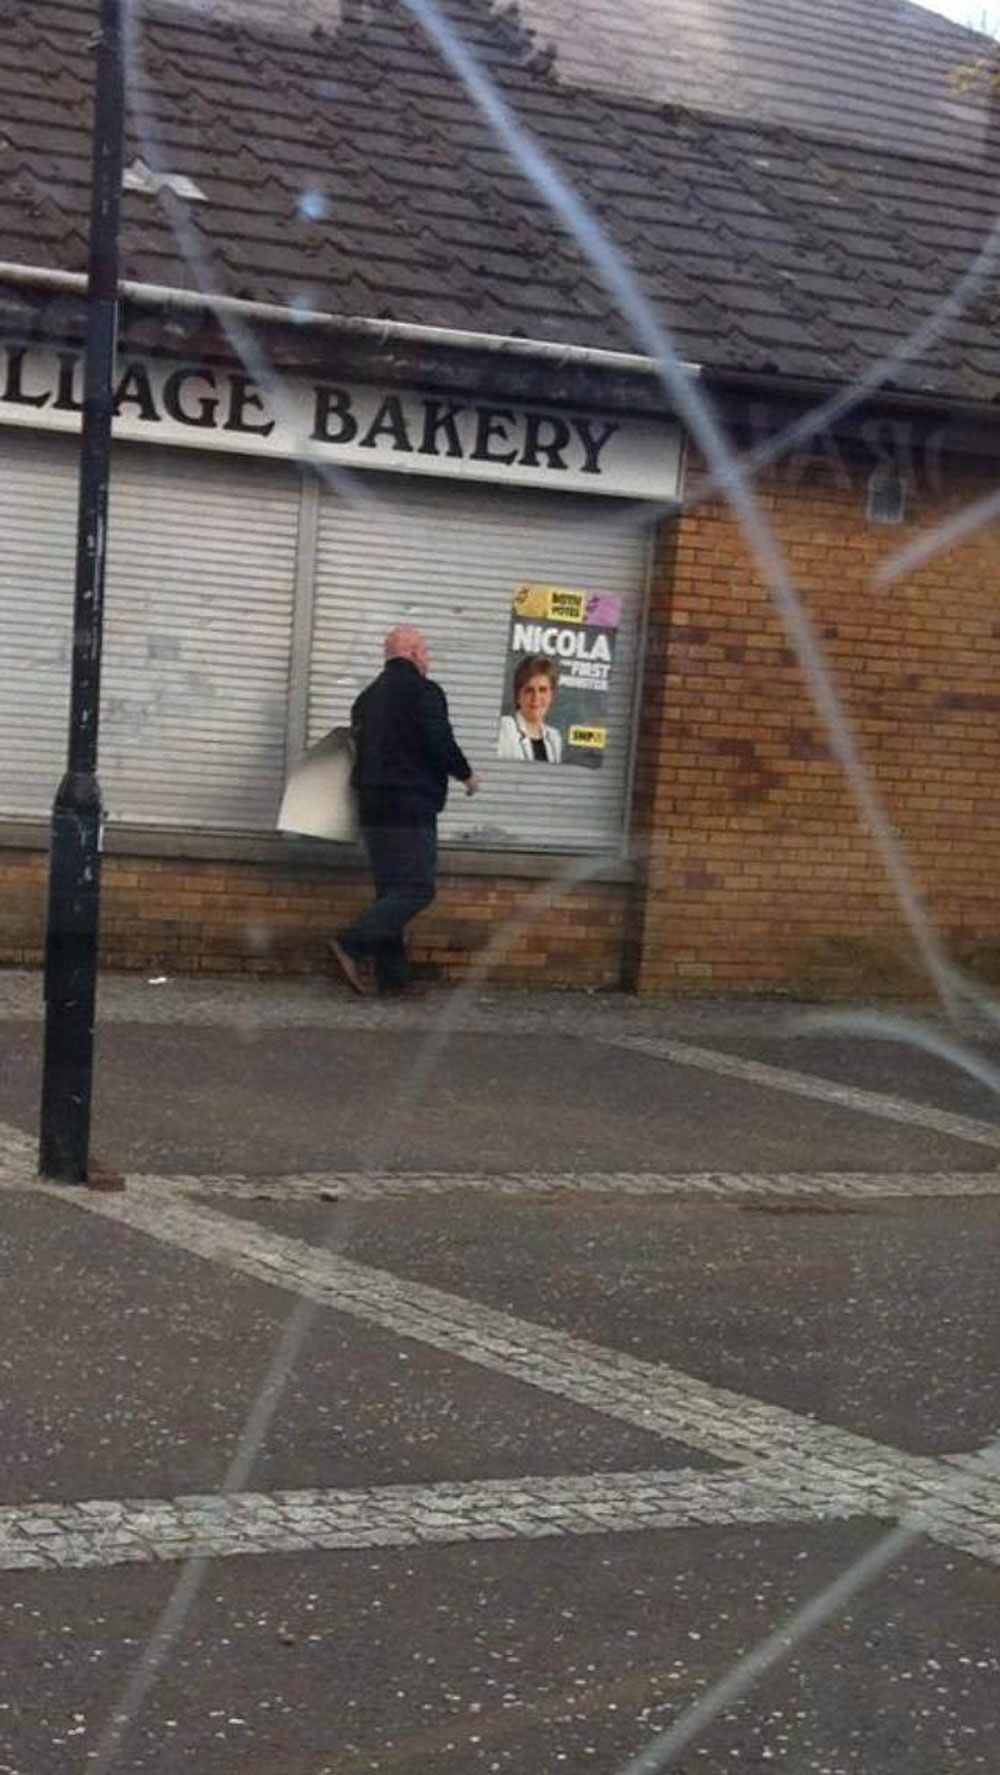 The second image appears to show him removing a poster from a shopfront